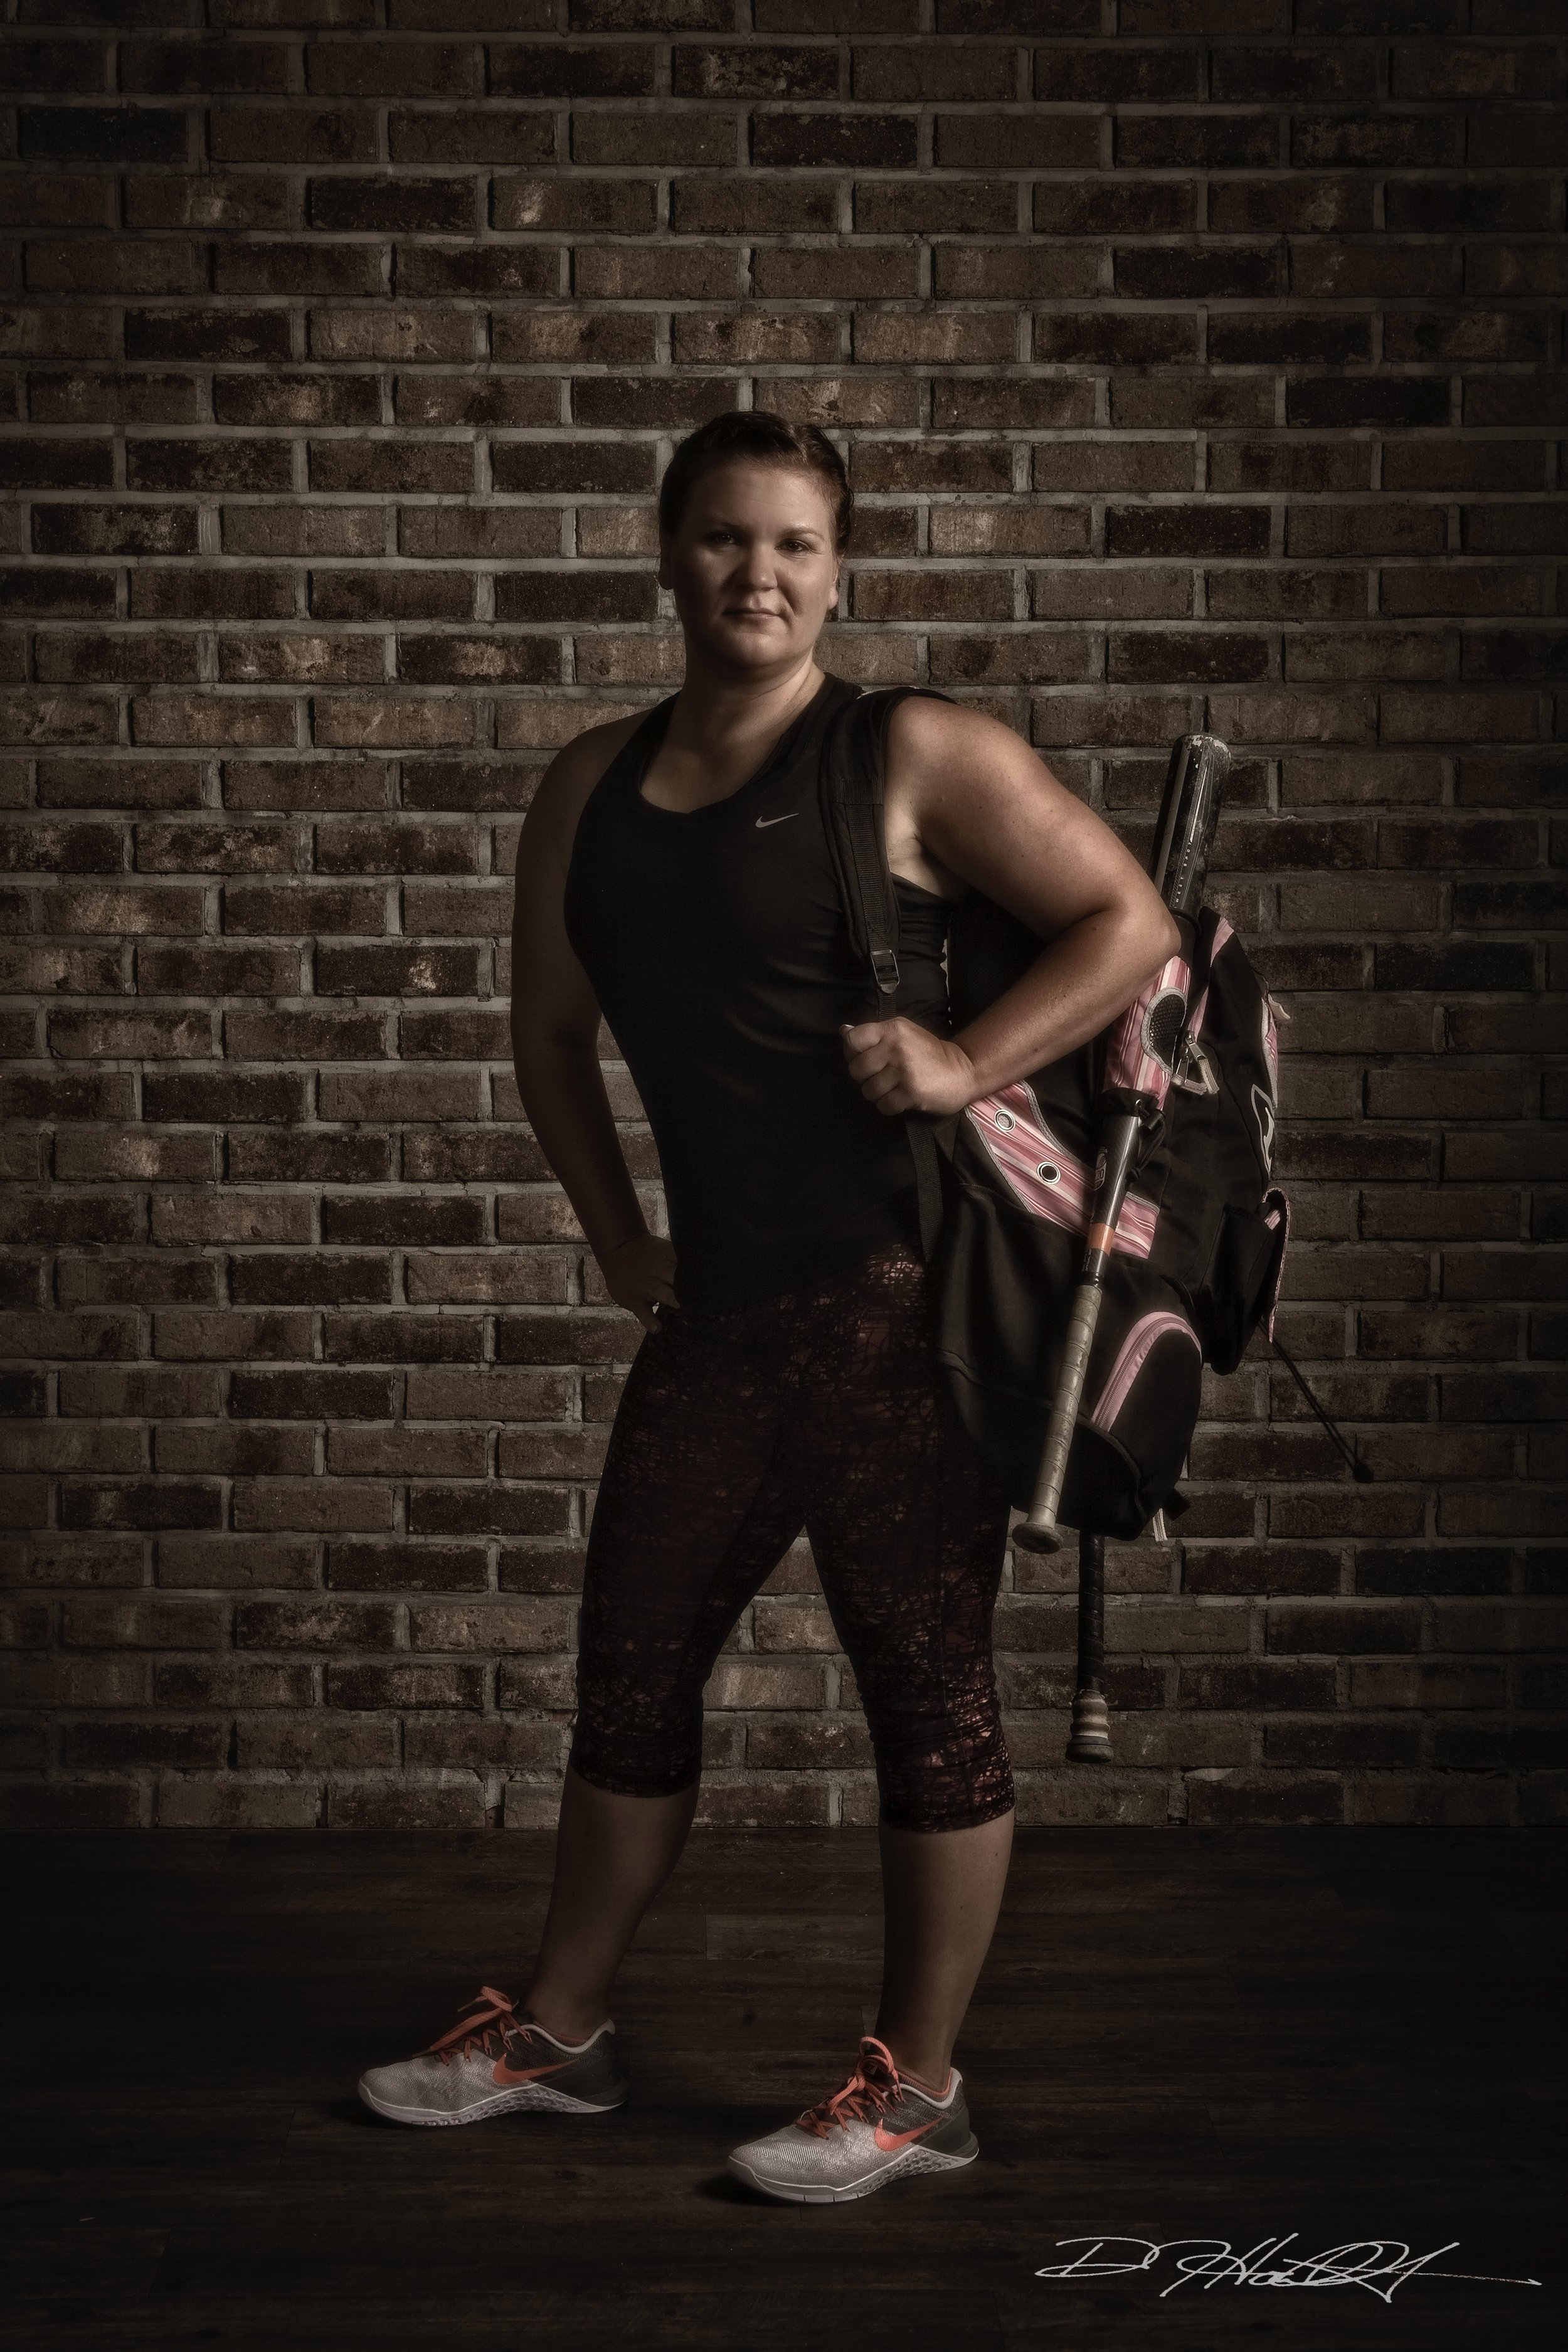 Nicole Swenson - Hi! My name is Nicole Swenson I am 34 and I started Micaiah's LivFIt class in June of 2015. I got started when a friend told me how much she enjoyed the class and she thought it was something I would enjoy as well. I wasn't so sure about the 5:30 am classes but I am glad I took the leap to try the class and now not only do I love the classes the early mornings are my favorite time to work out.Being an athlete in High School and College I am no stranger to the gym and hard work, but as I got older and out of the regular routines the gym became a chore. I would usually go 3 days a week but it was always the same routine and I found myself getting bored. Now I love going Tuesday and Thursday mornings to Liv Fit as well as the gym on my own 3-4 other days. The routines are always different and challenging and the best part is that I find myself pushing to get better and better every time. Also when I am done with class I feel like I accomplished something good for me that day and I still have the majority of the day left to accomplish more.I have never been a small person but the mind set Micaiah has instilled in all of her clients is how you look and feel about yourself is so much more important than a number on the scale. I am a strong, athletic, independent person and I wouldn't have it any other way.